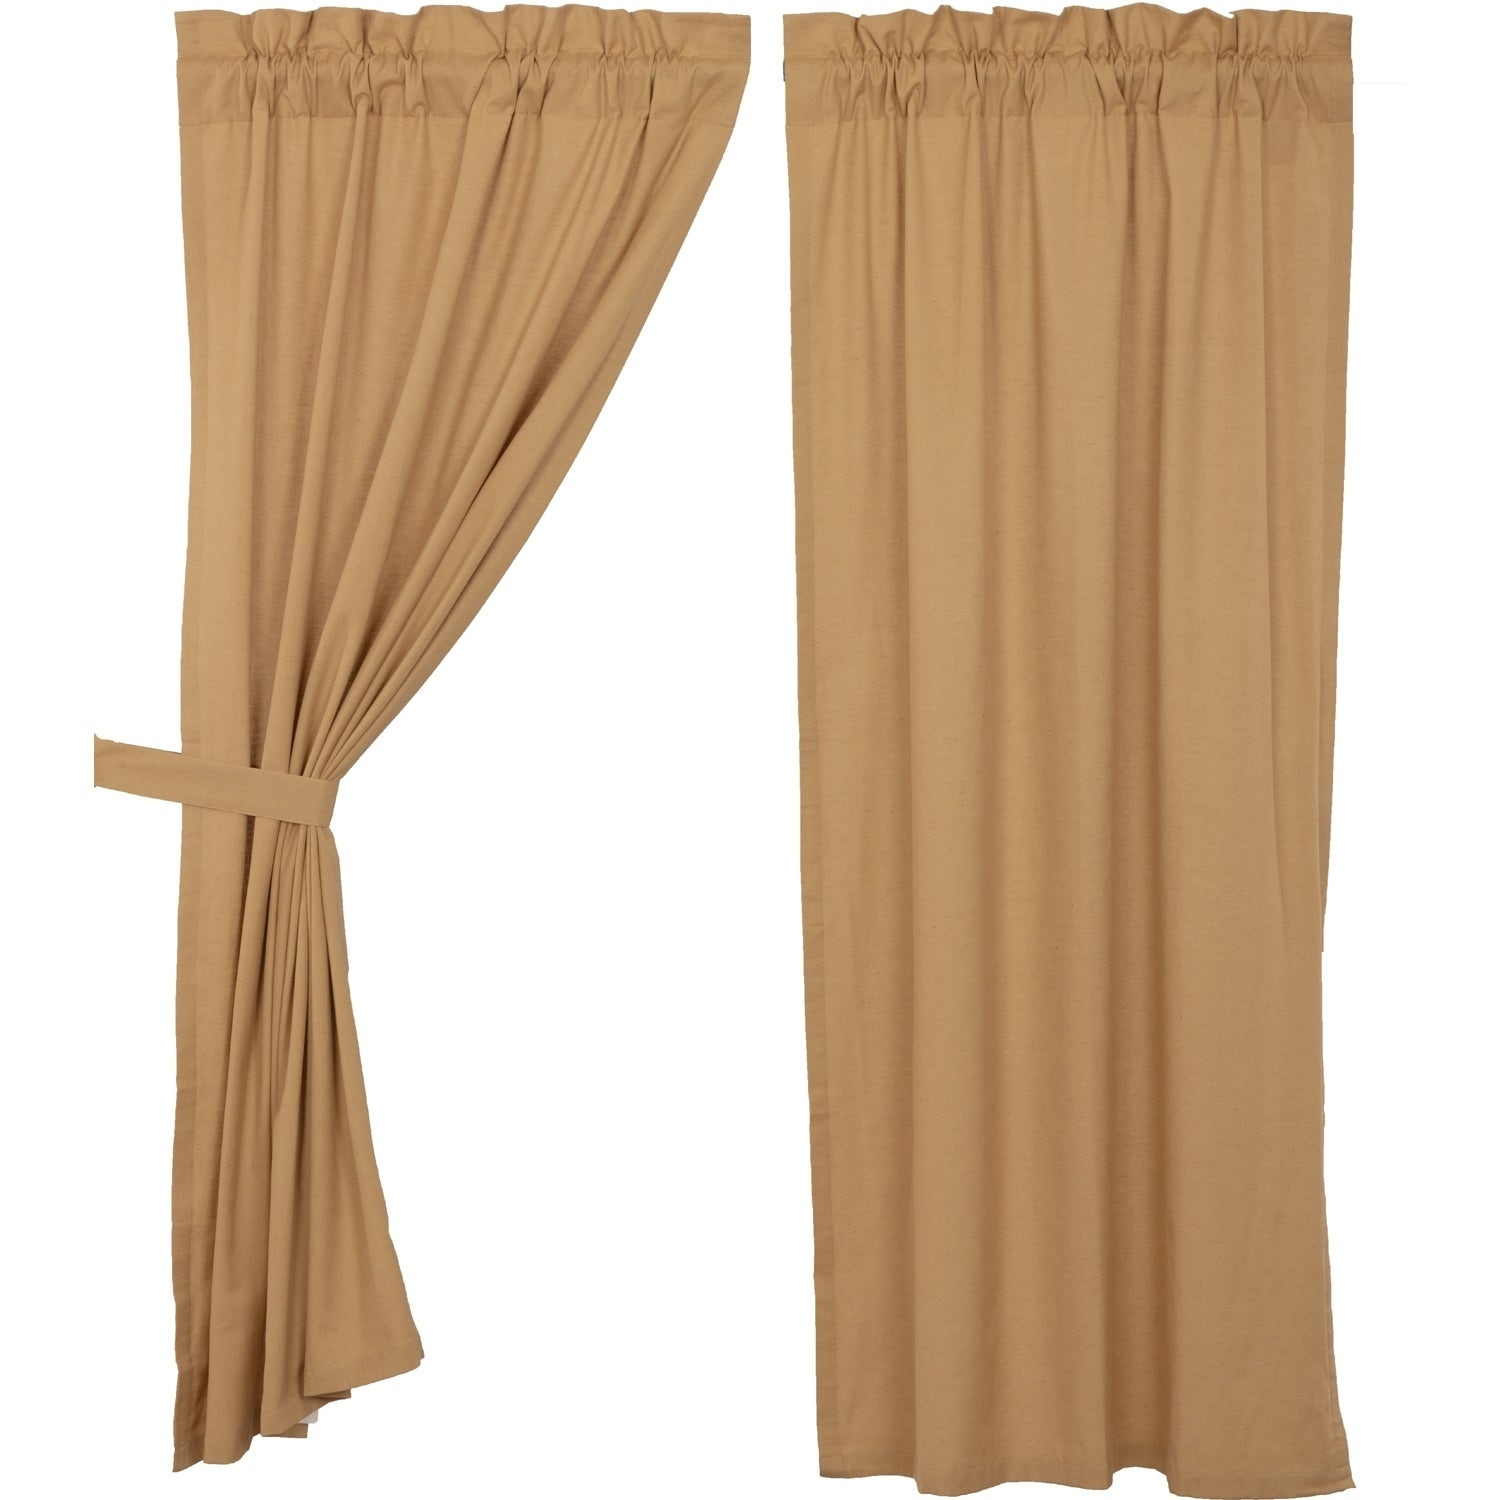 Details About Farmhouse Curtains Vhc Simple Life Flax Panel Pair Rod With Simple Life Flax Tier Pairs (View 3 of 20)